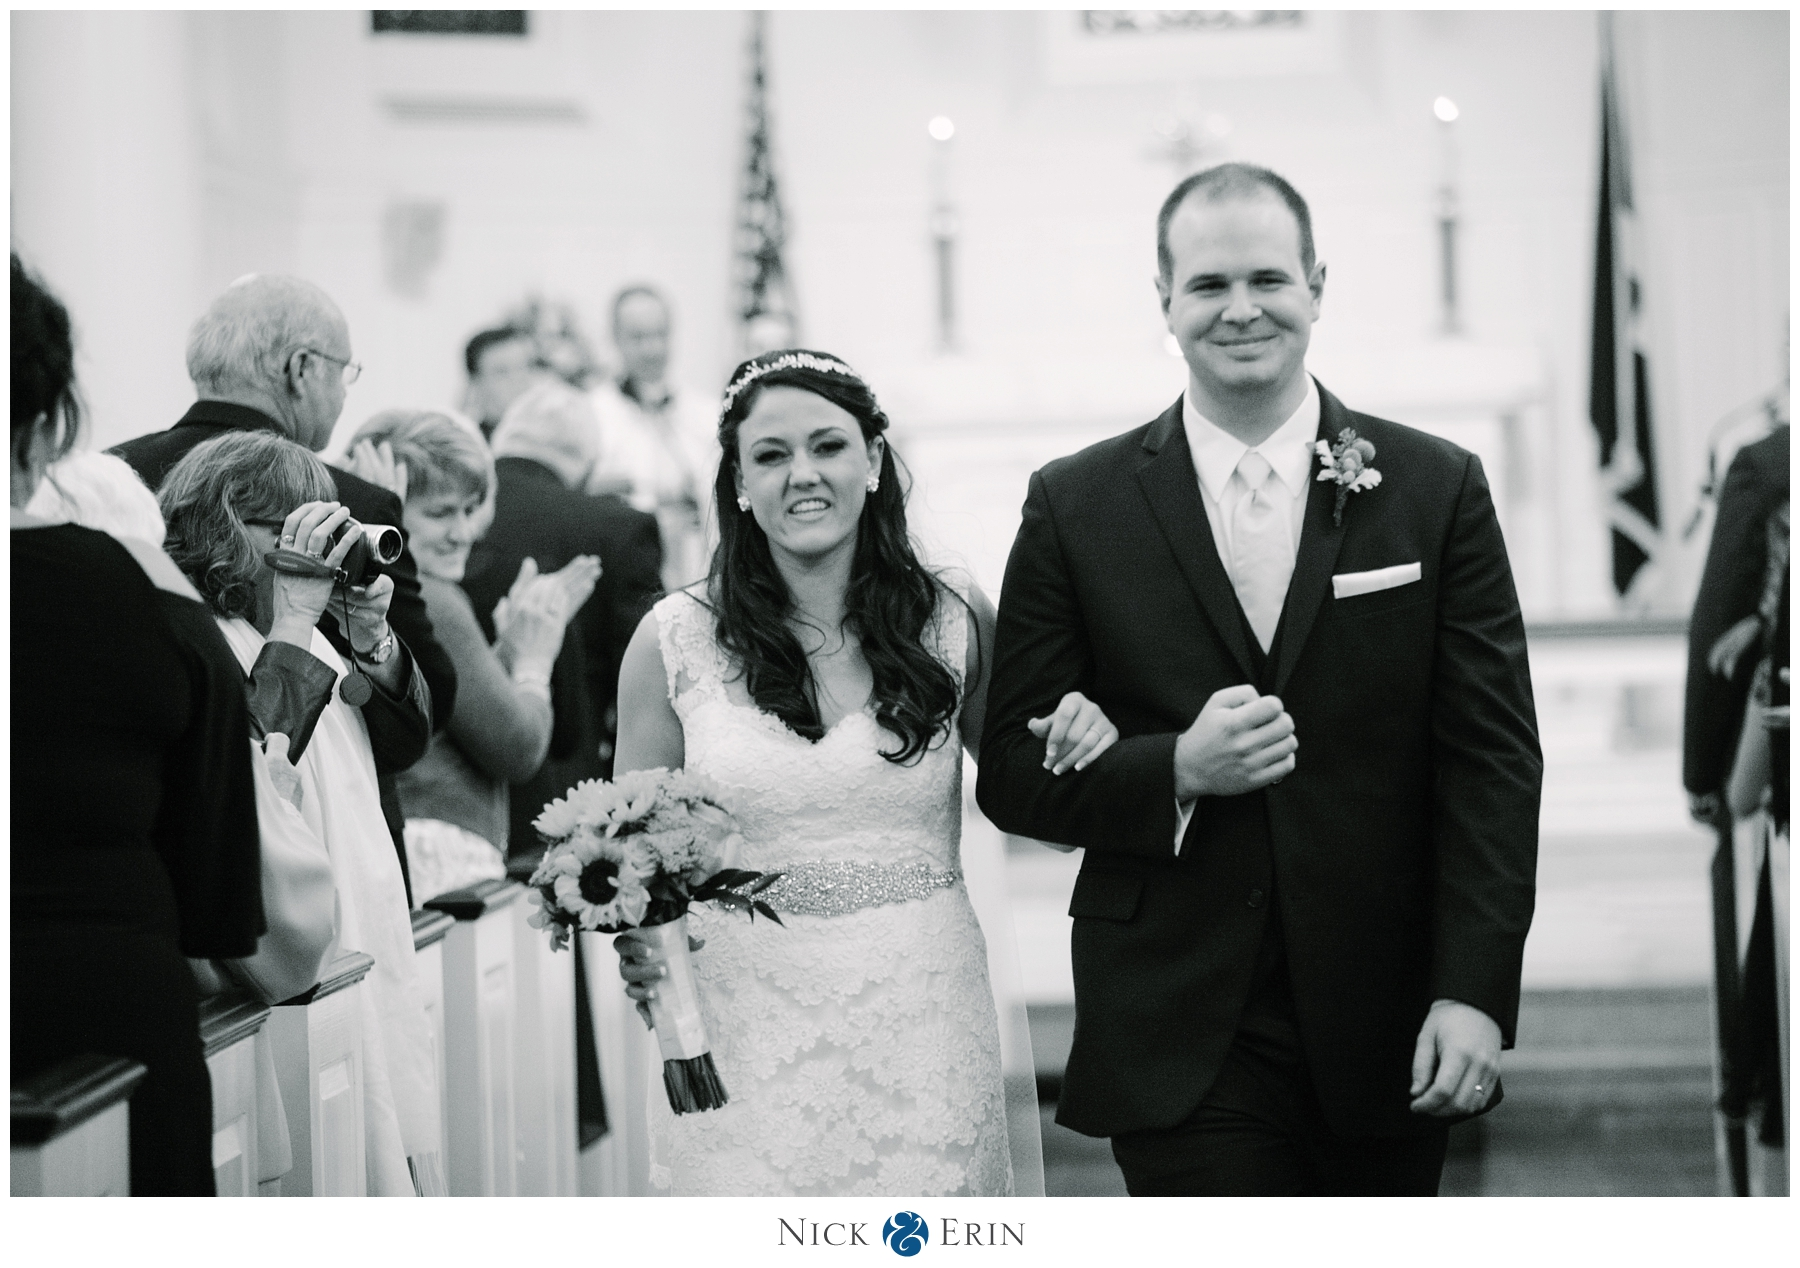 Donner_Photography_Fort Myer Wedding_Katie & Will_0036